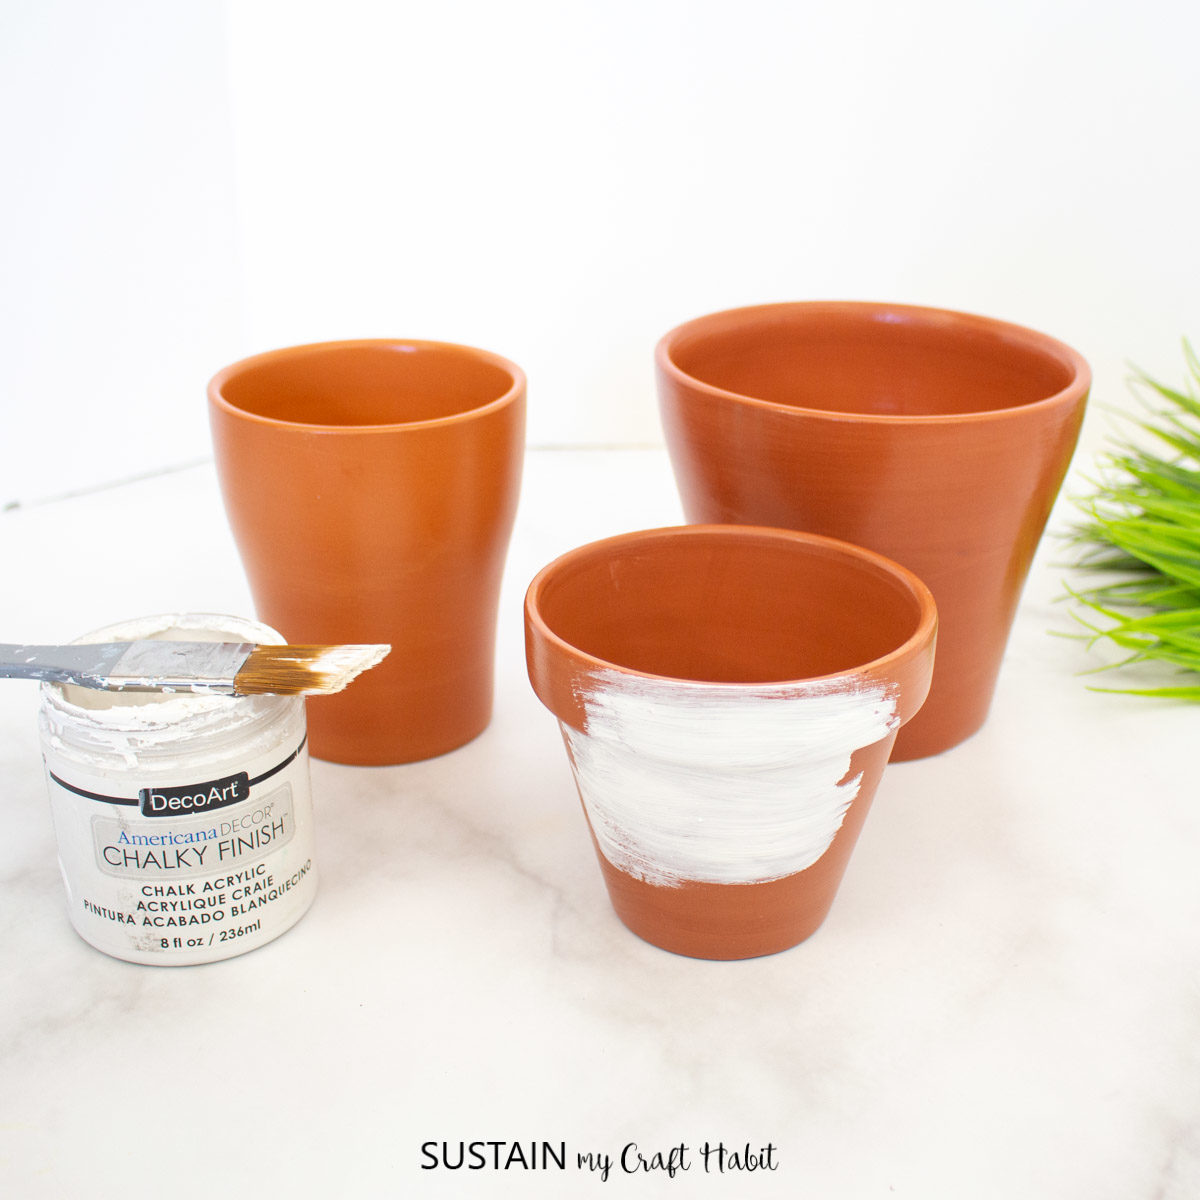 Painting the terracotta pots with white paint.